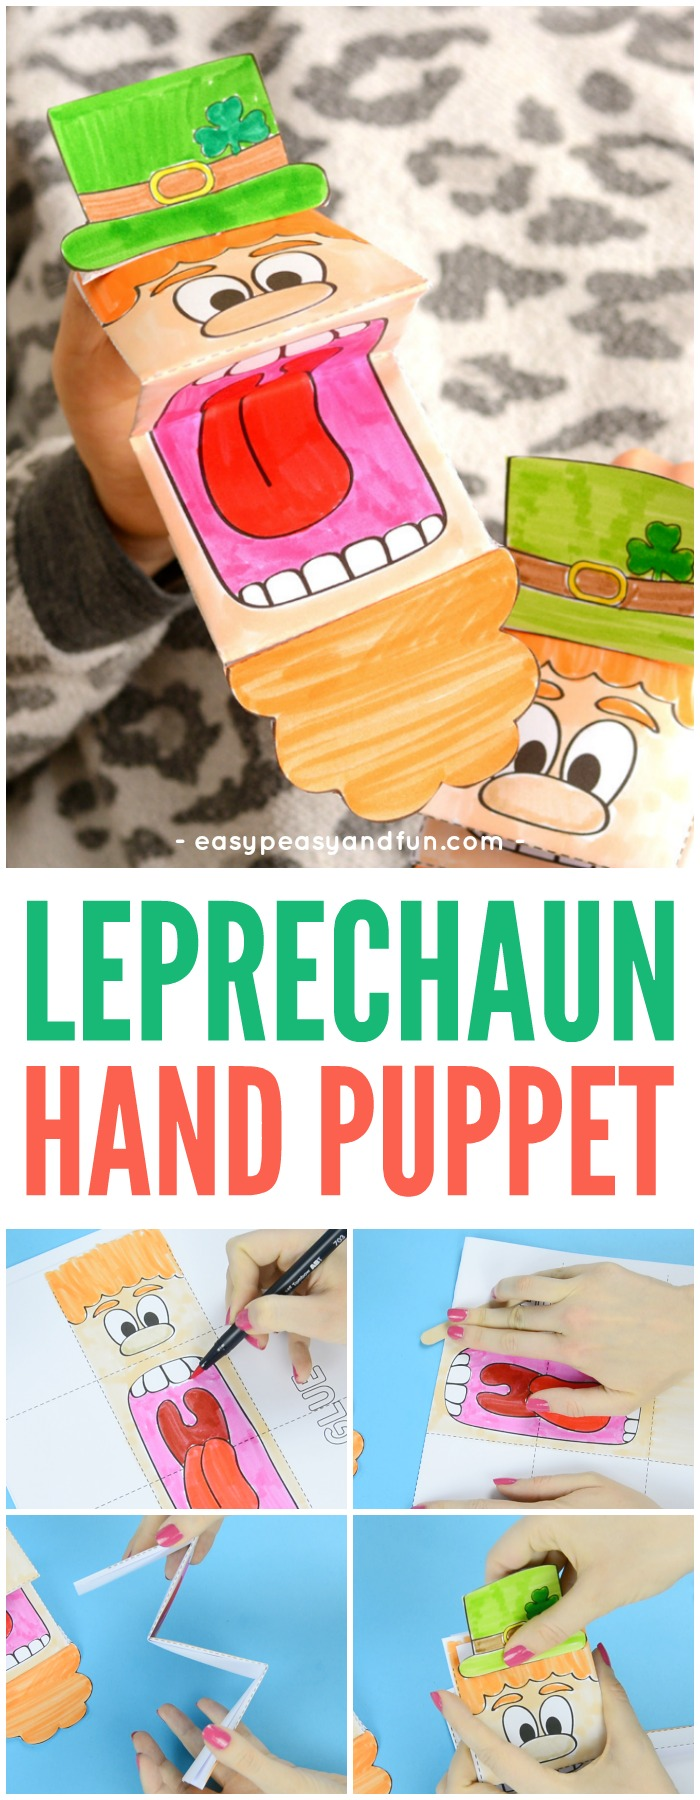 Printable Leprechaun Puppet for Kids #printablepuppet #leprechauncrafts #papercraftsforkids